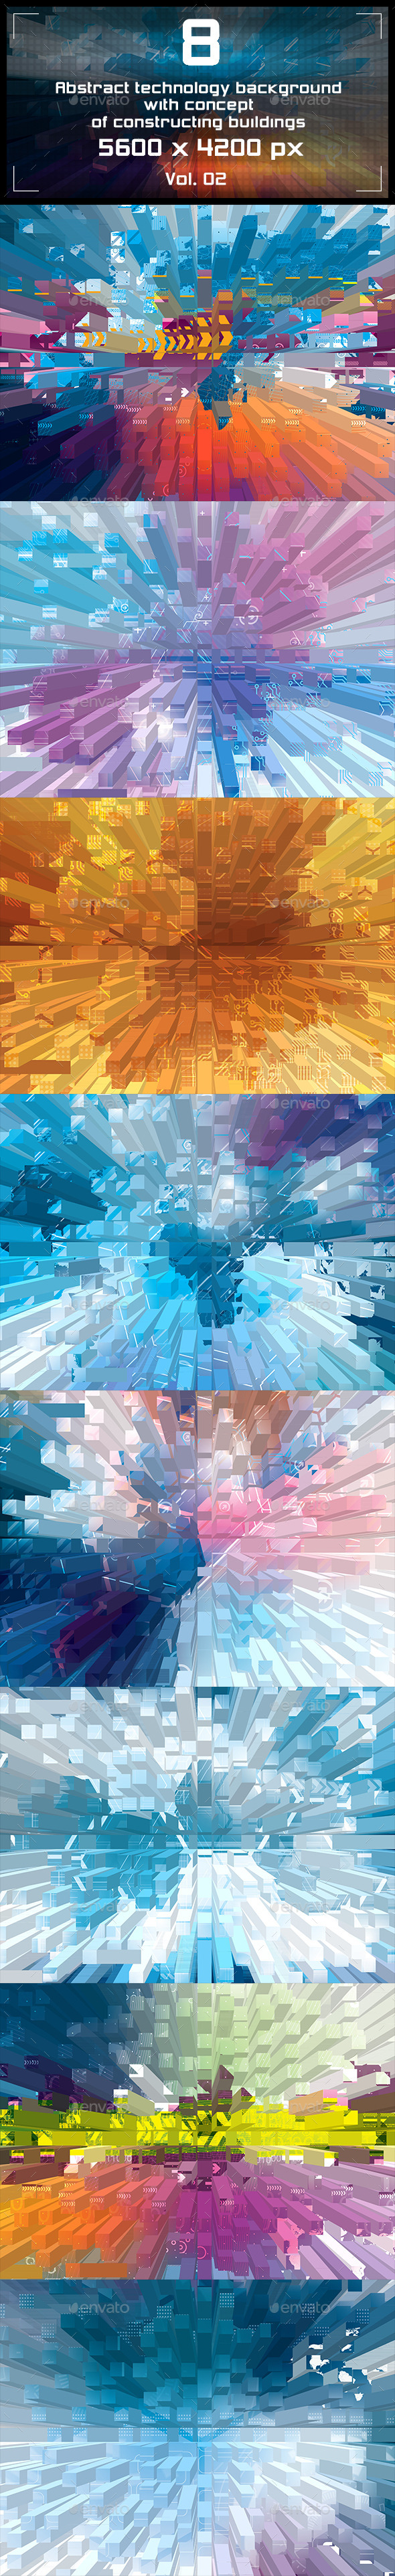 Abstract Background Technology - Tech / Futuristic Backgrounds